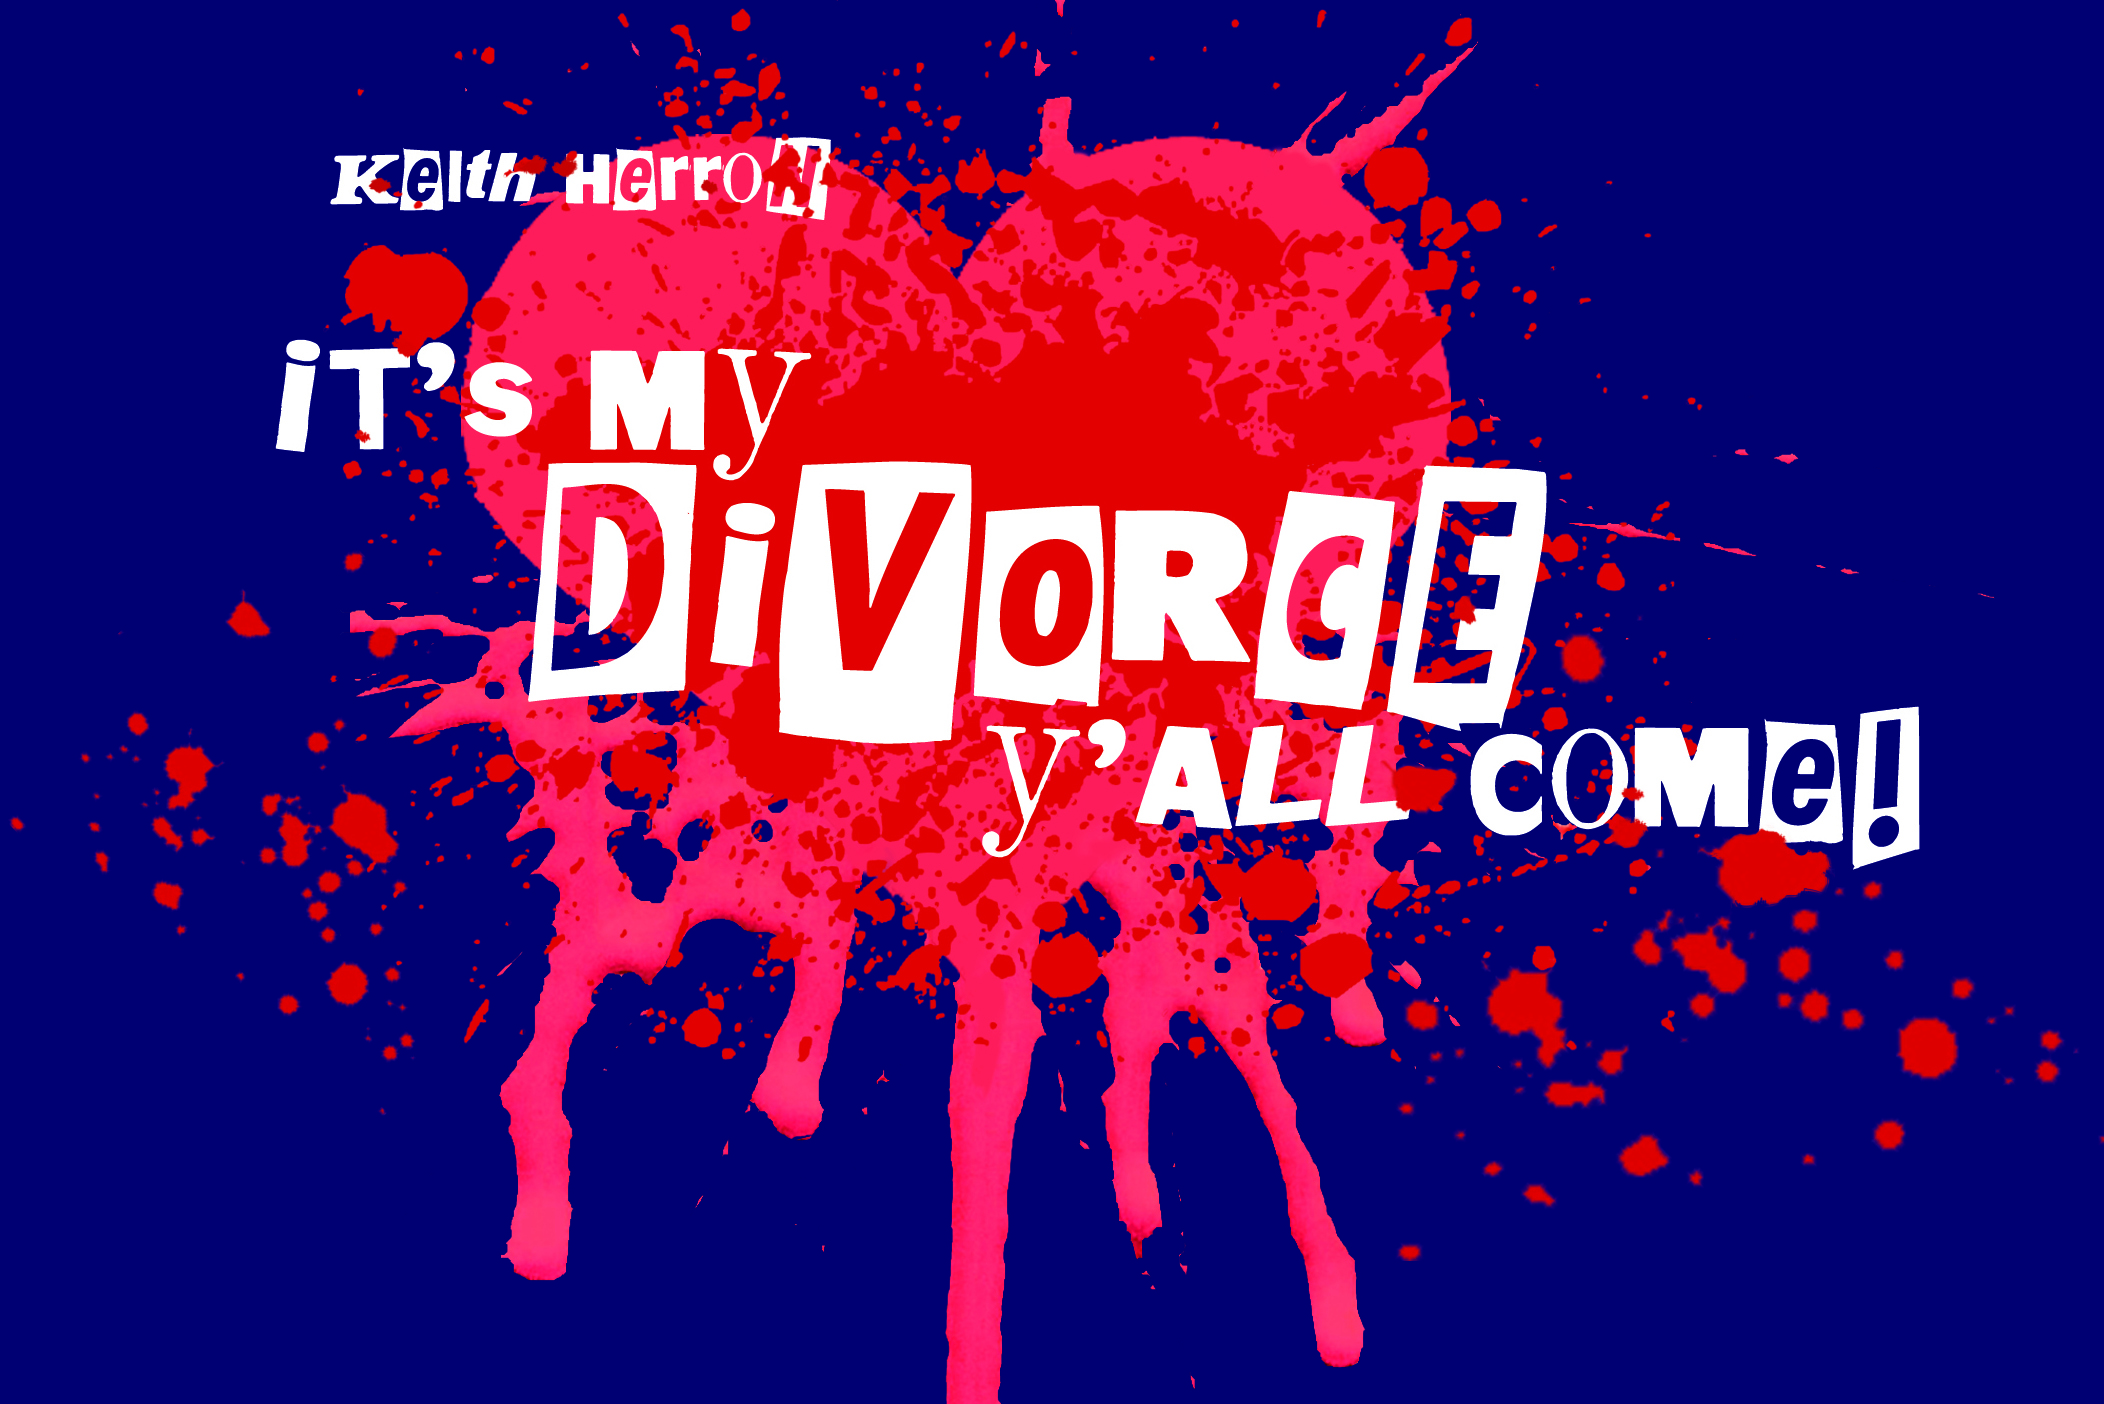 It's My Divorce - Y'all Come